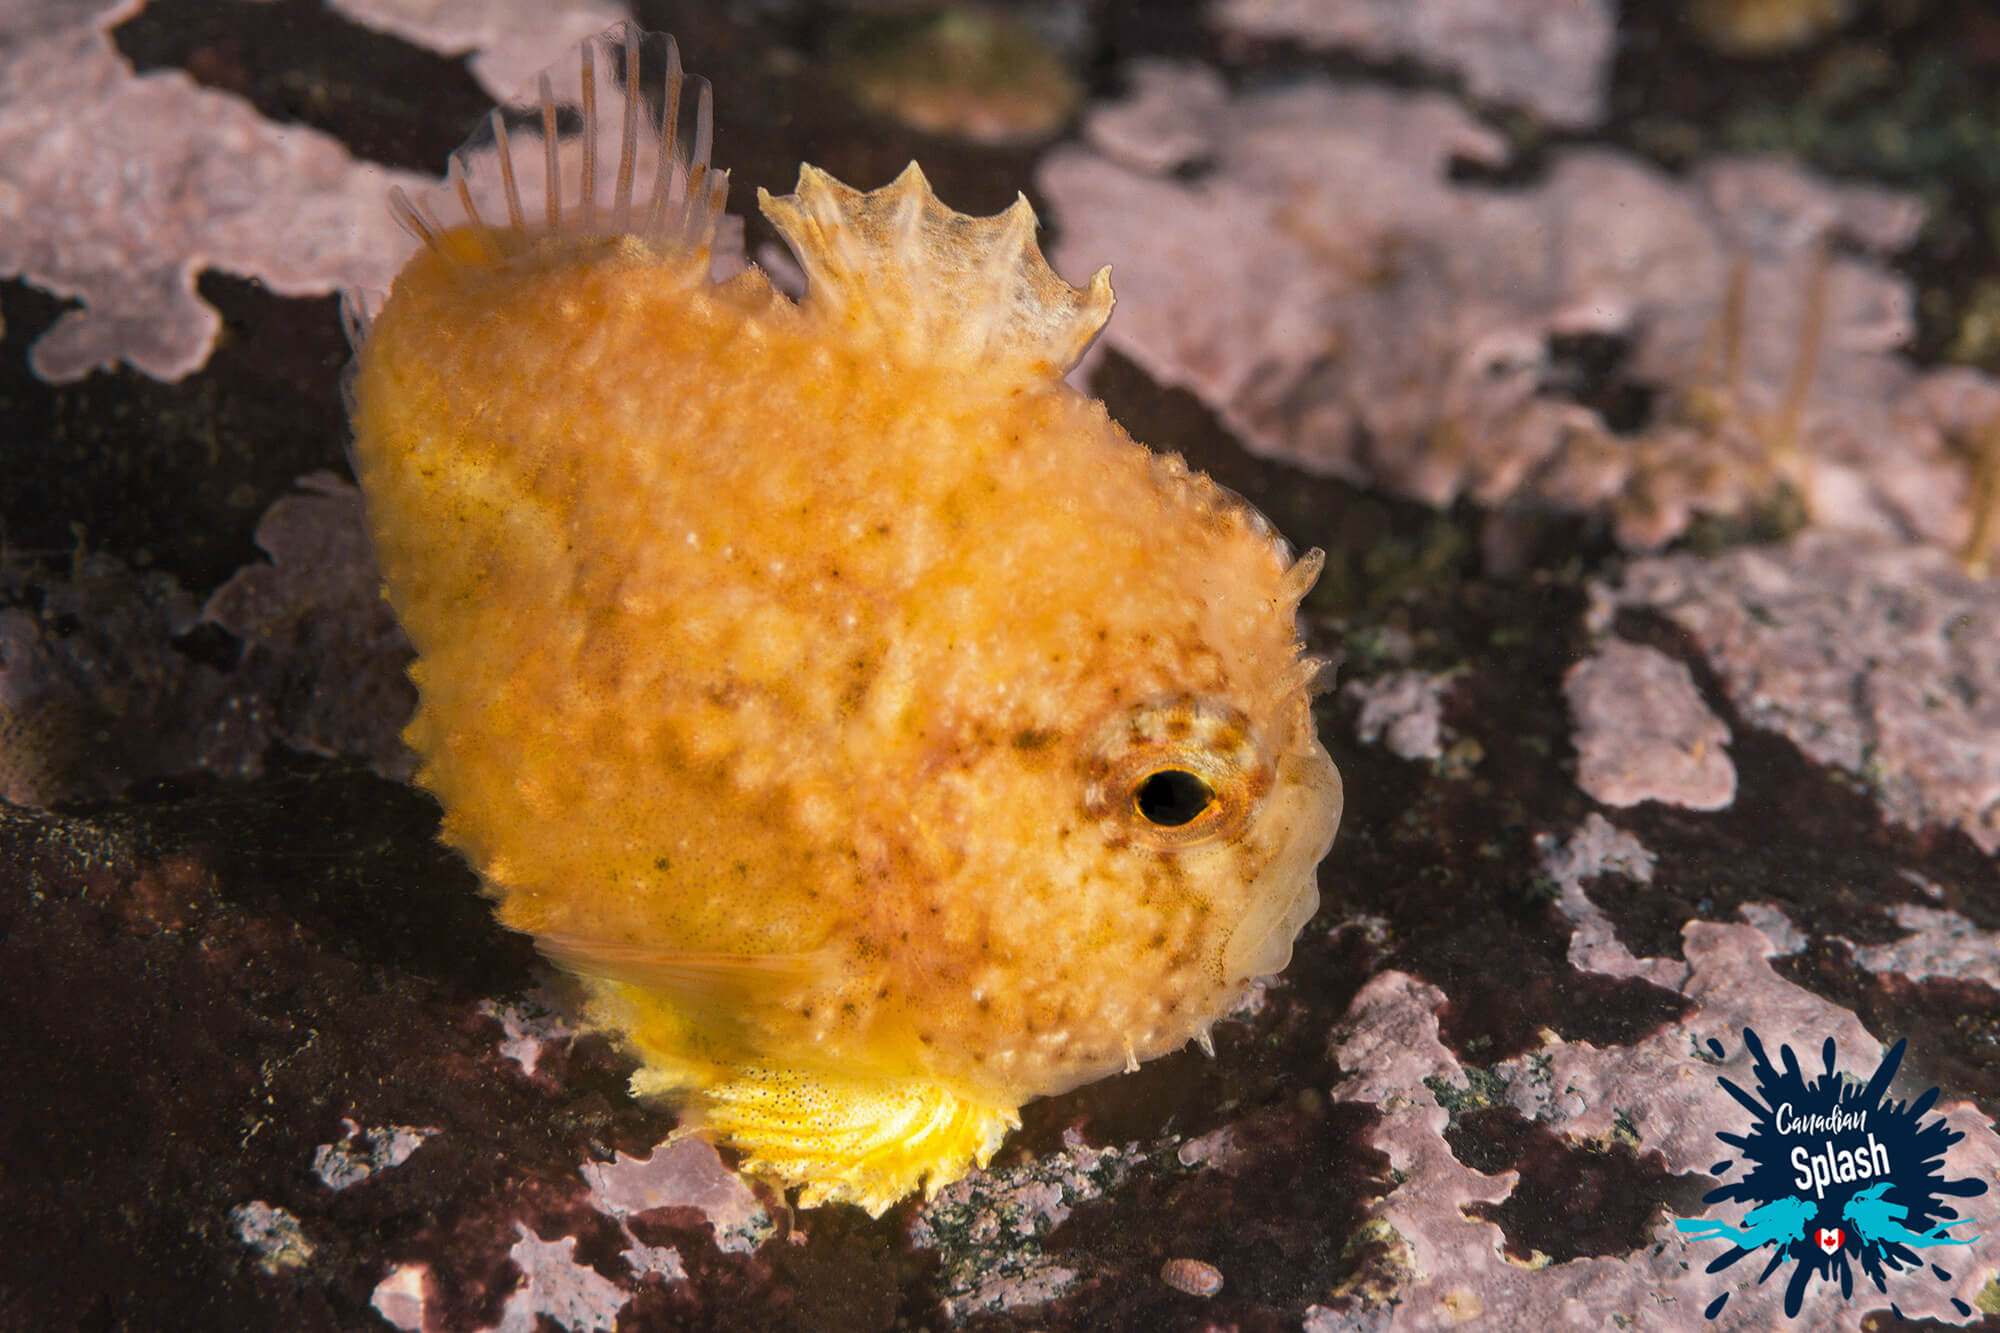 Small Yellow Spiny Lumpsucker On A Rock Diving In St Margarets Bay, Nova Scotia, Canadian Splash Scuba Diving